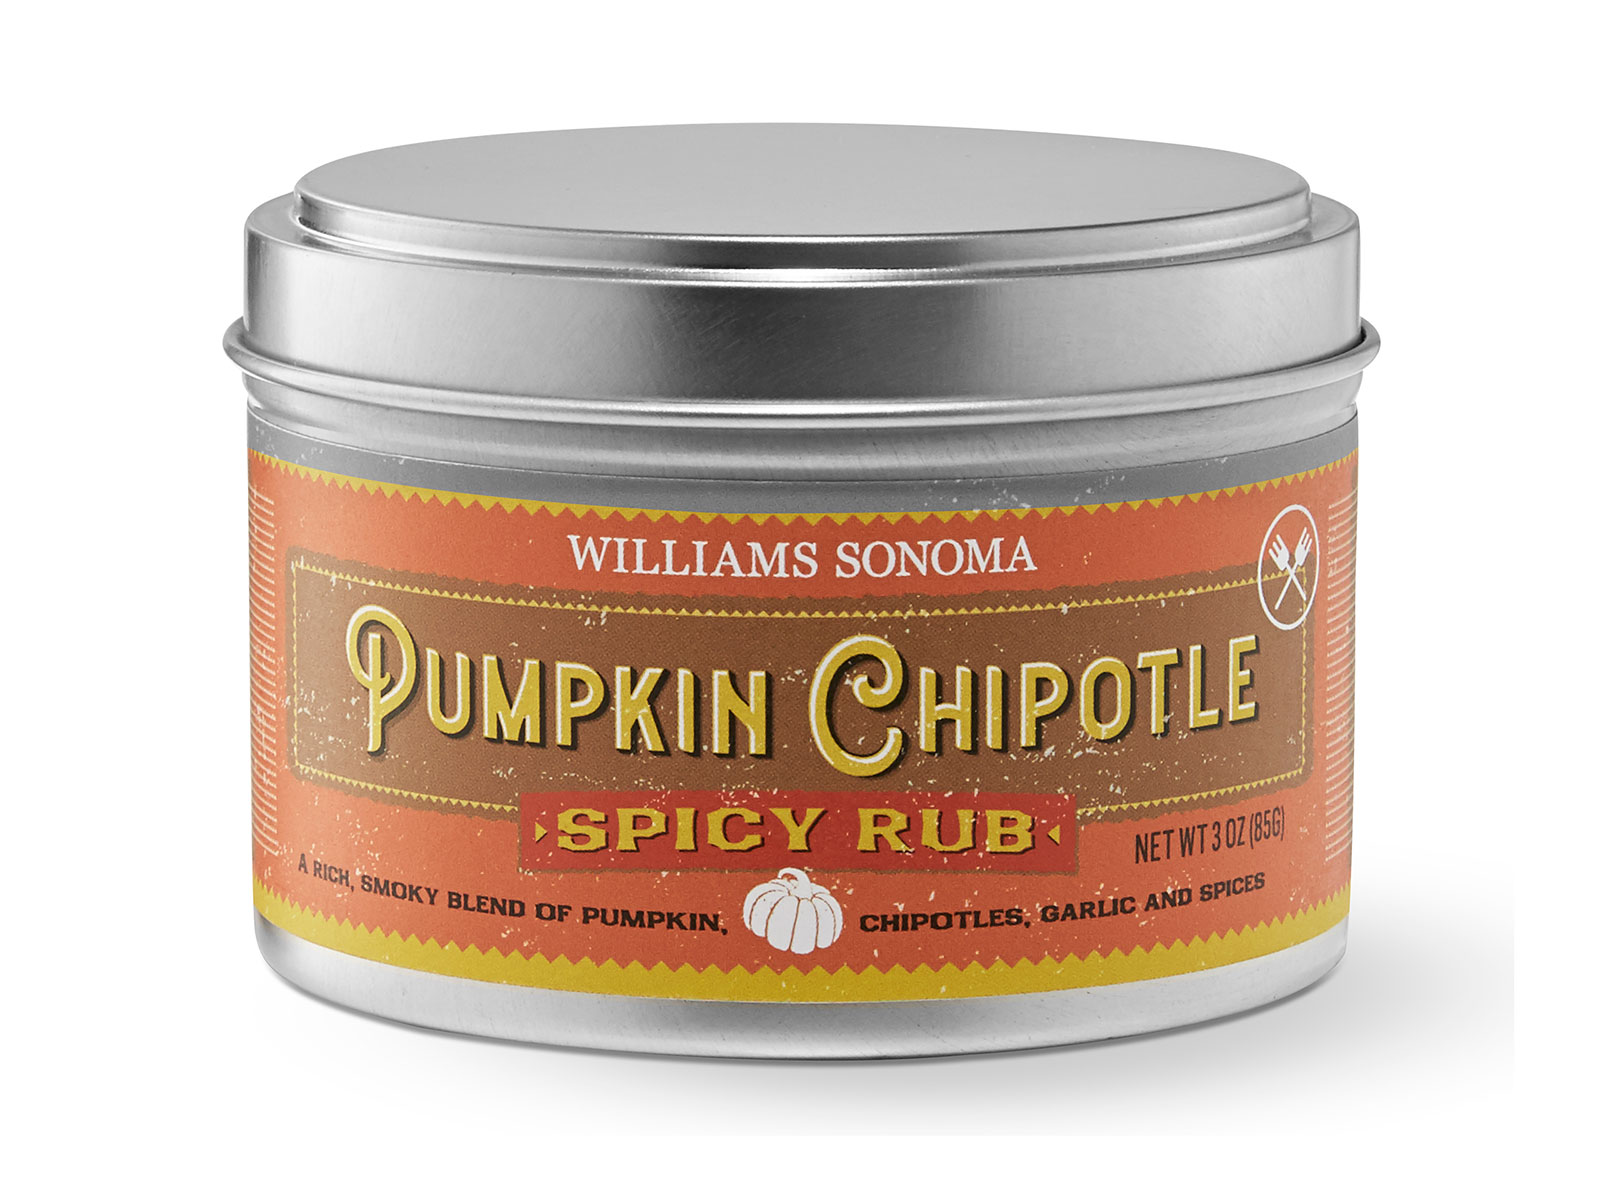 pumpkin chipotle